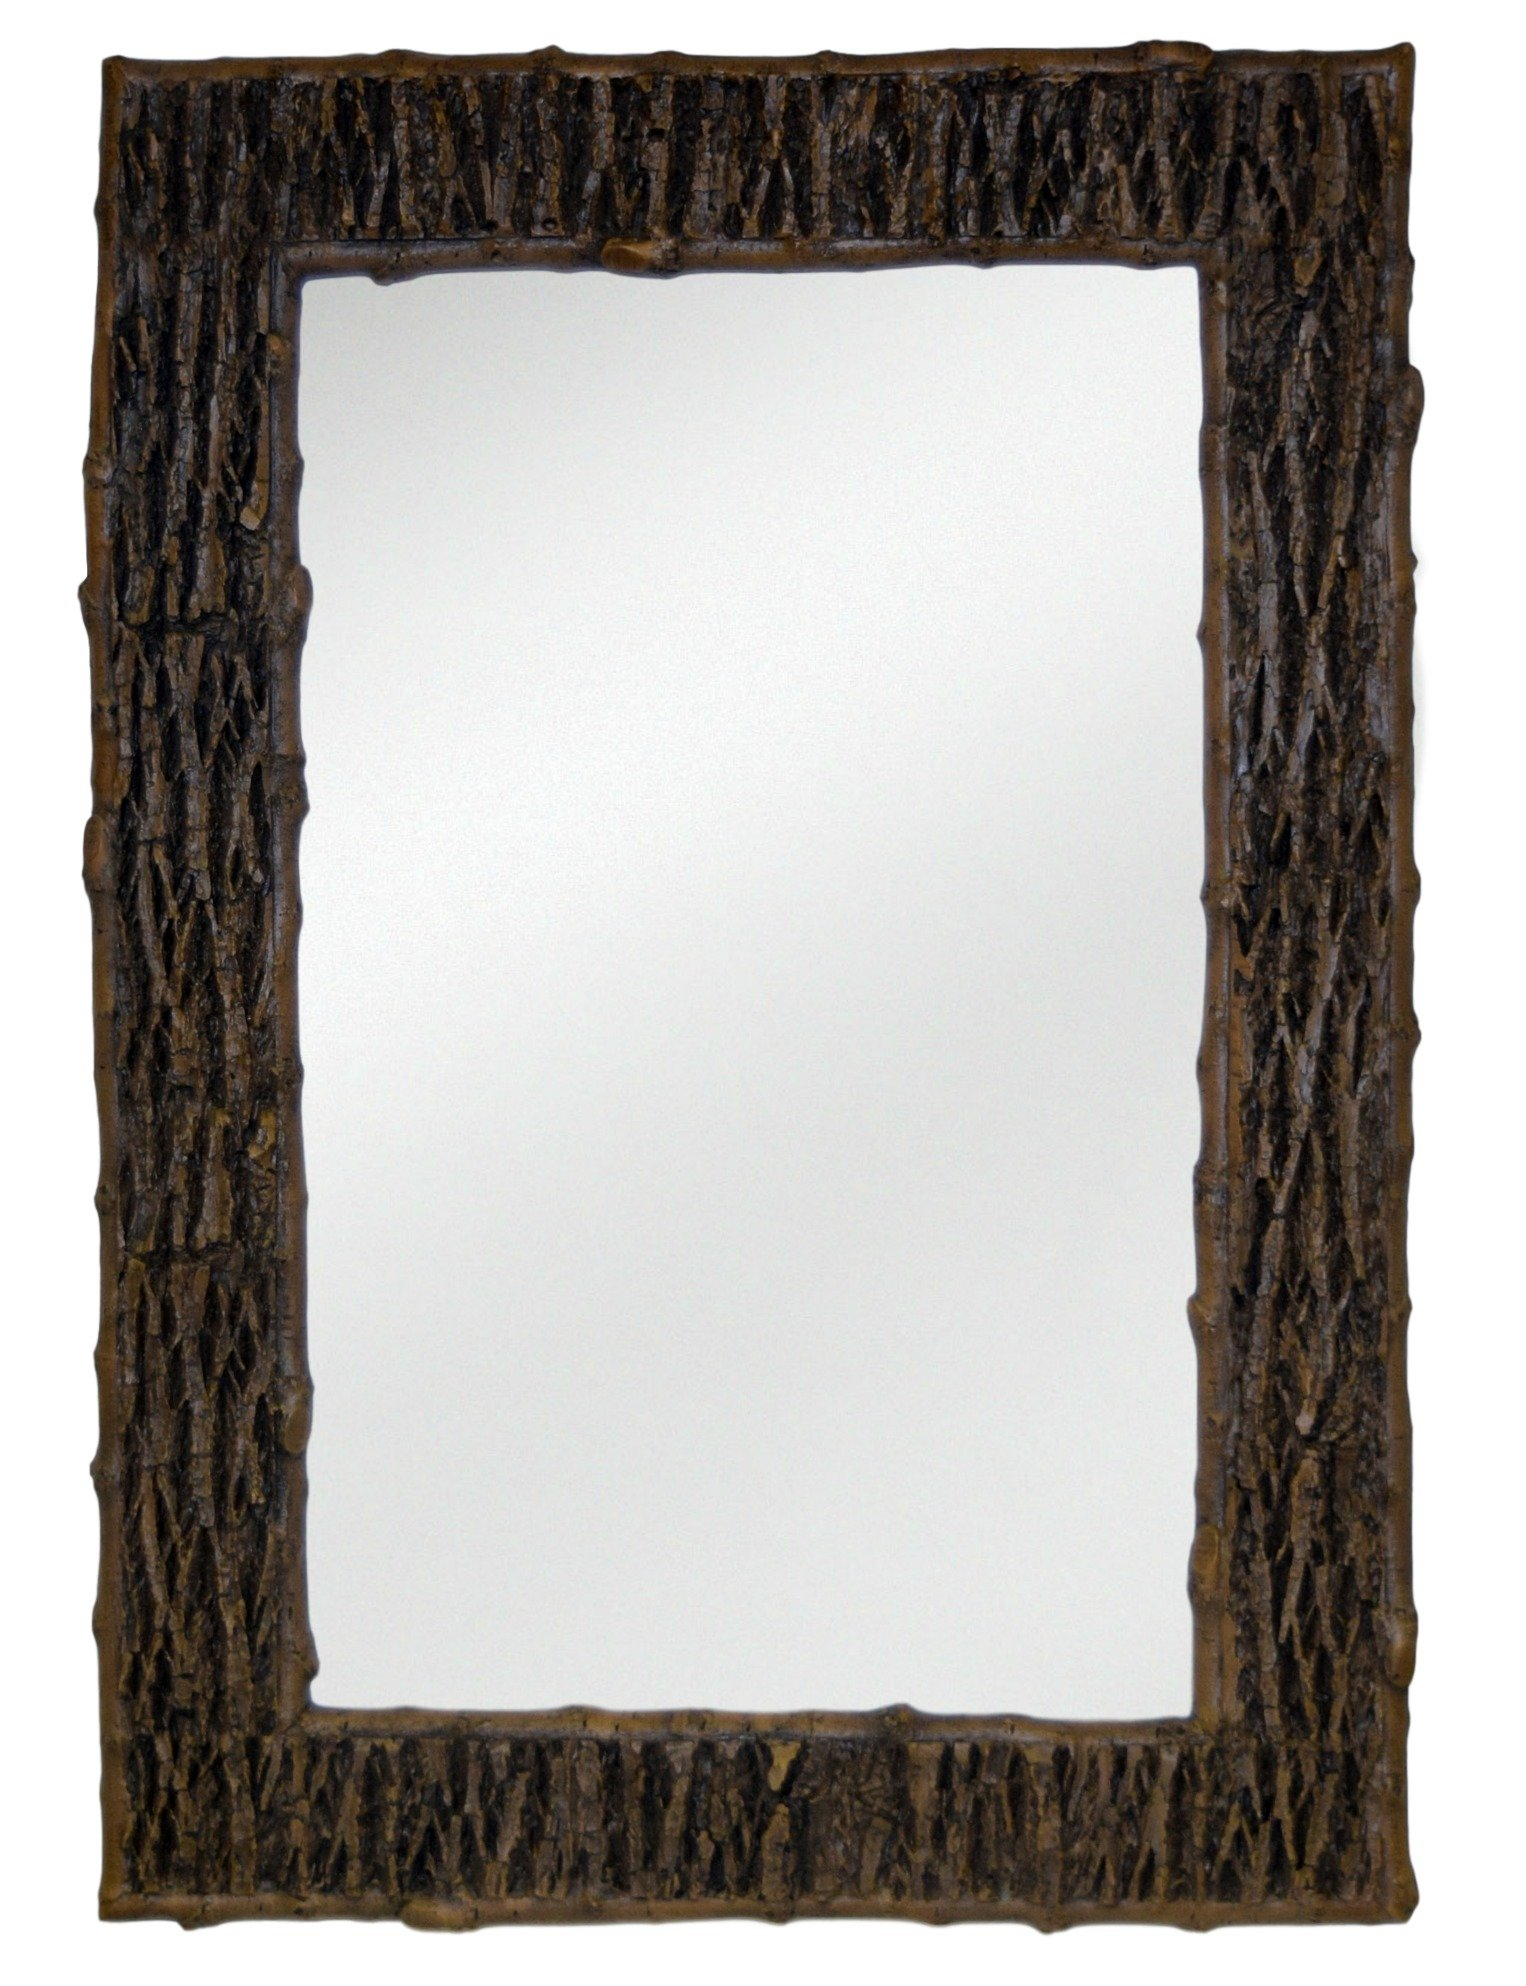 Tree Branch Wall Mirror | Wayfair With Cromartie Tree Branch Wall Mirrors (Image 17 of 20)